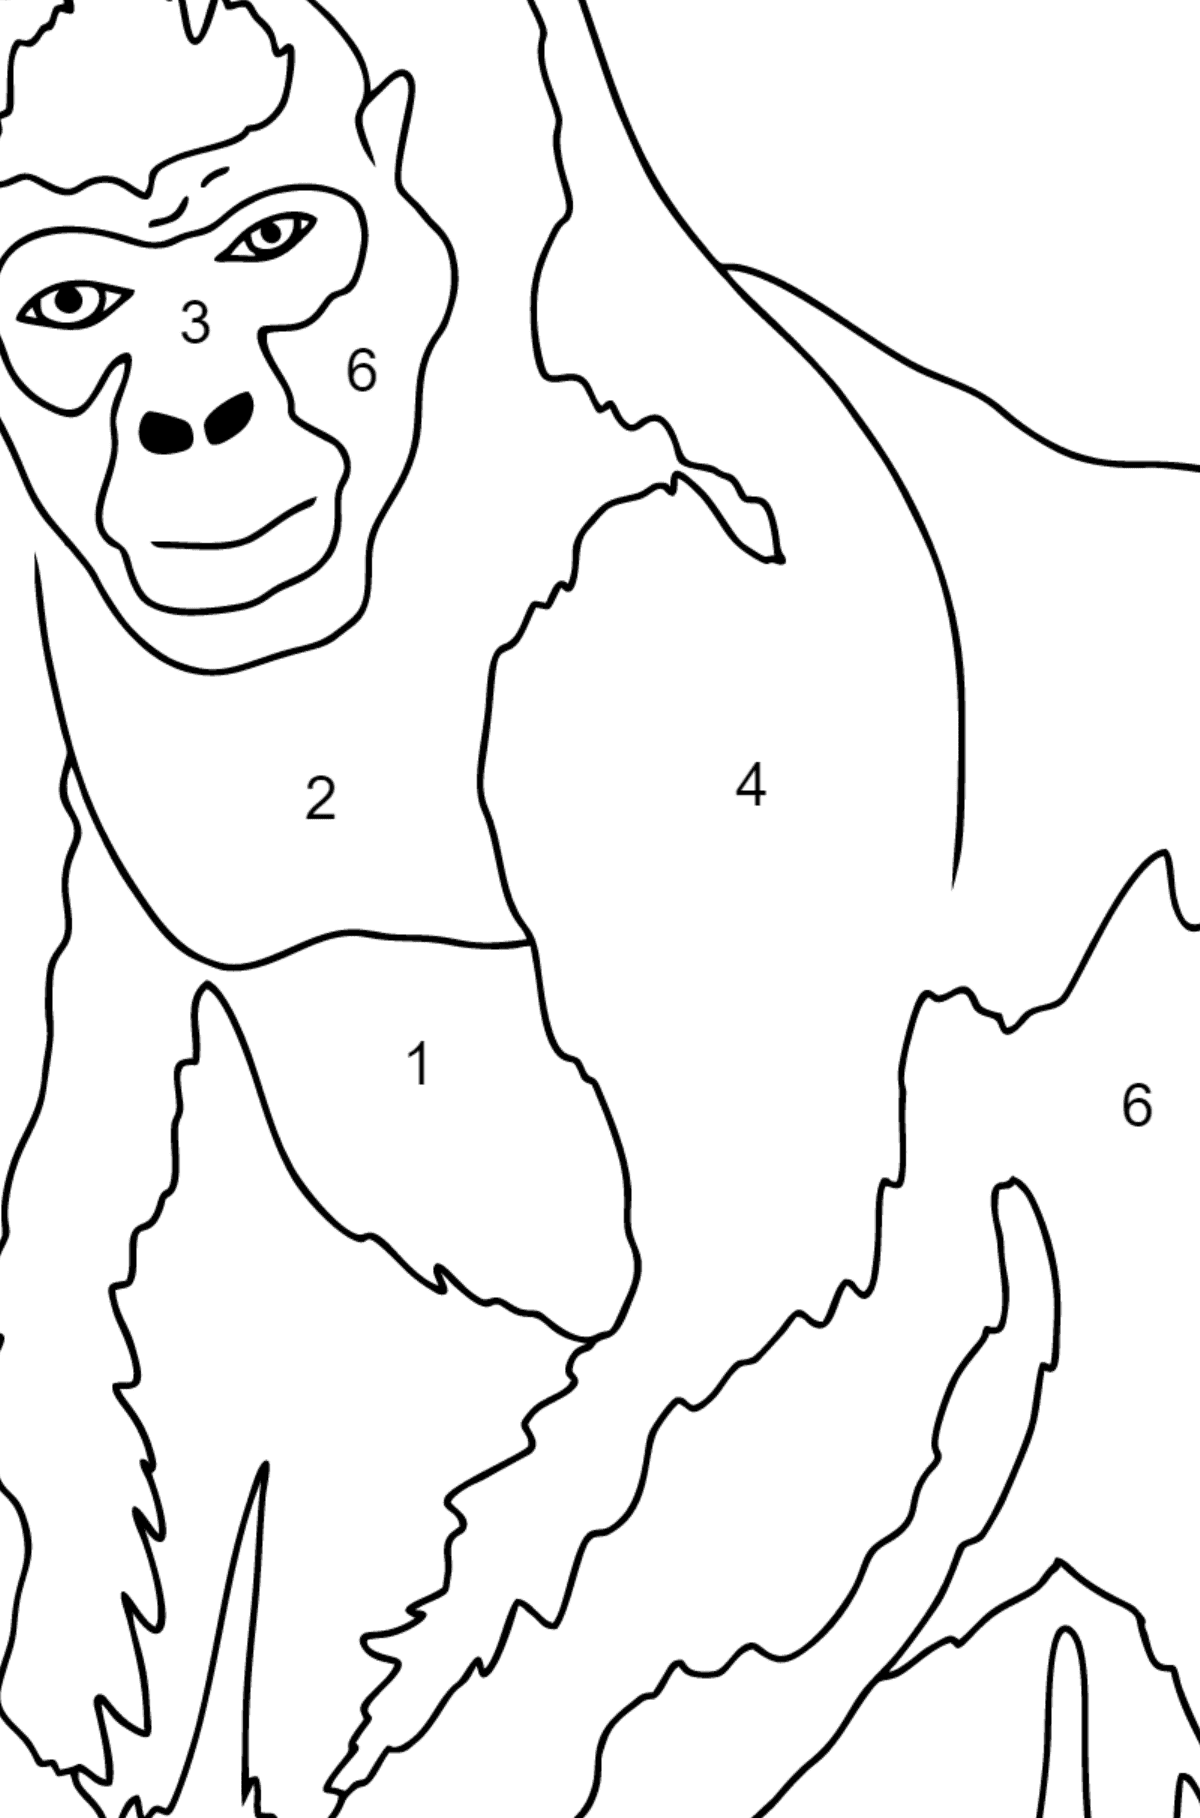 Coloring Page - A Real Gorilla - Coloring by Numbers for Kids